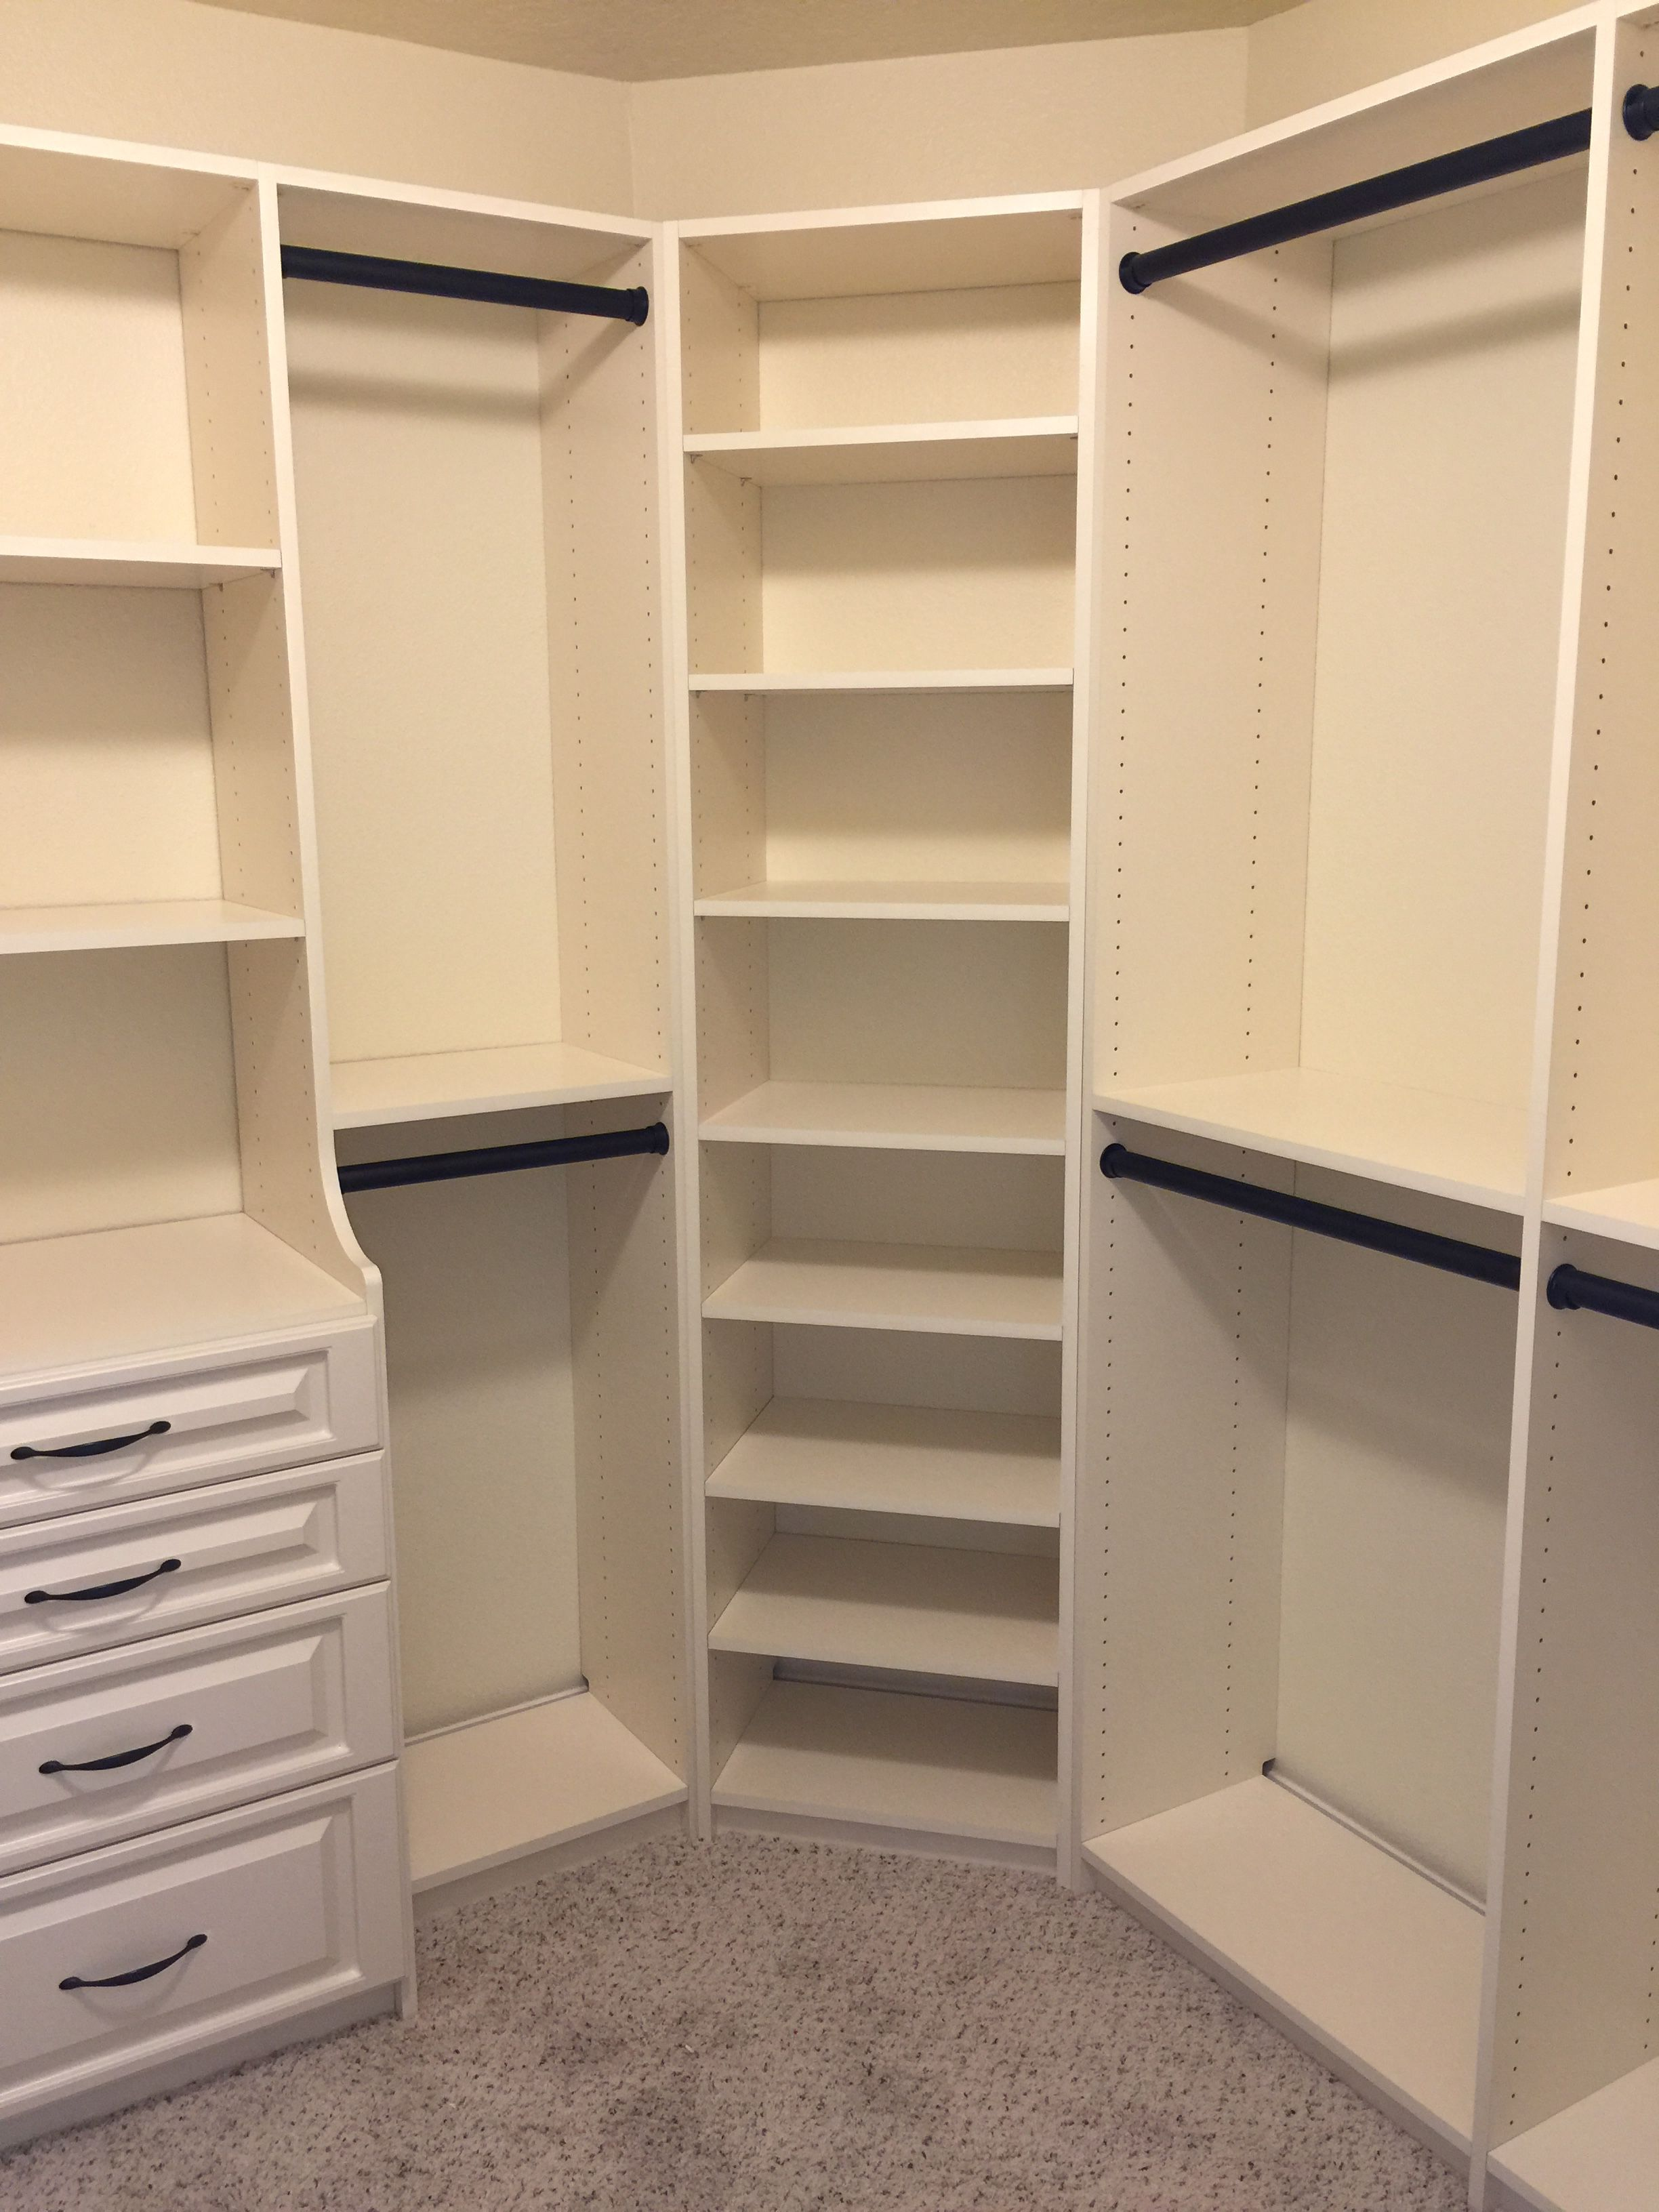 Large Walk In Closet With Plenty Of Storage Space For Clothes And